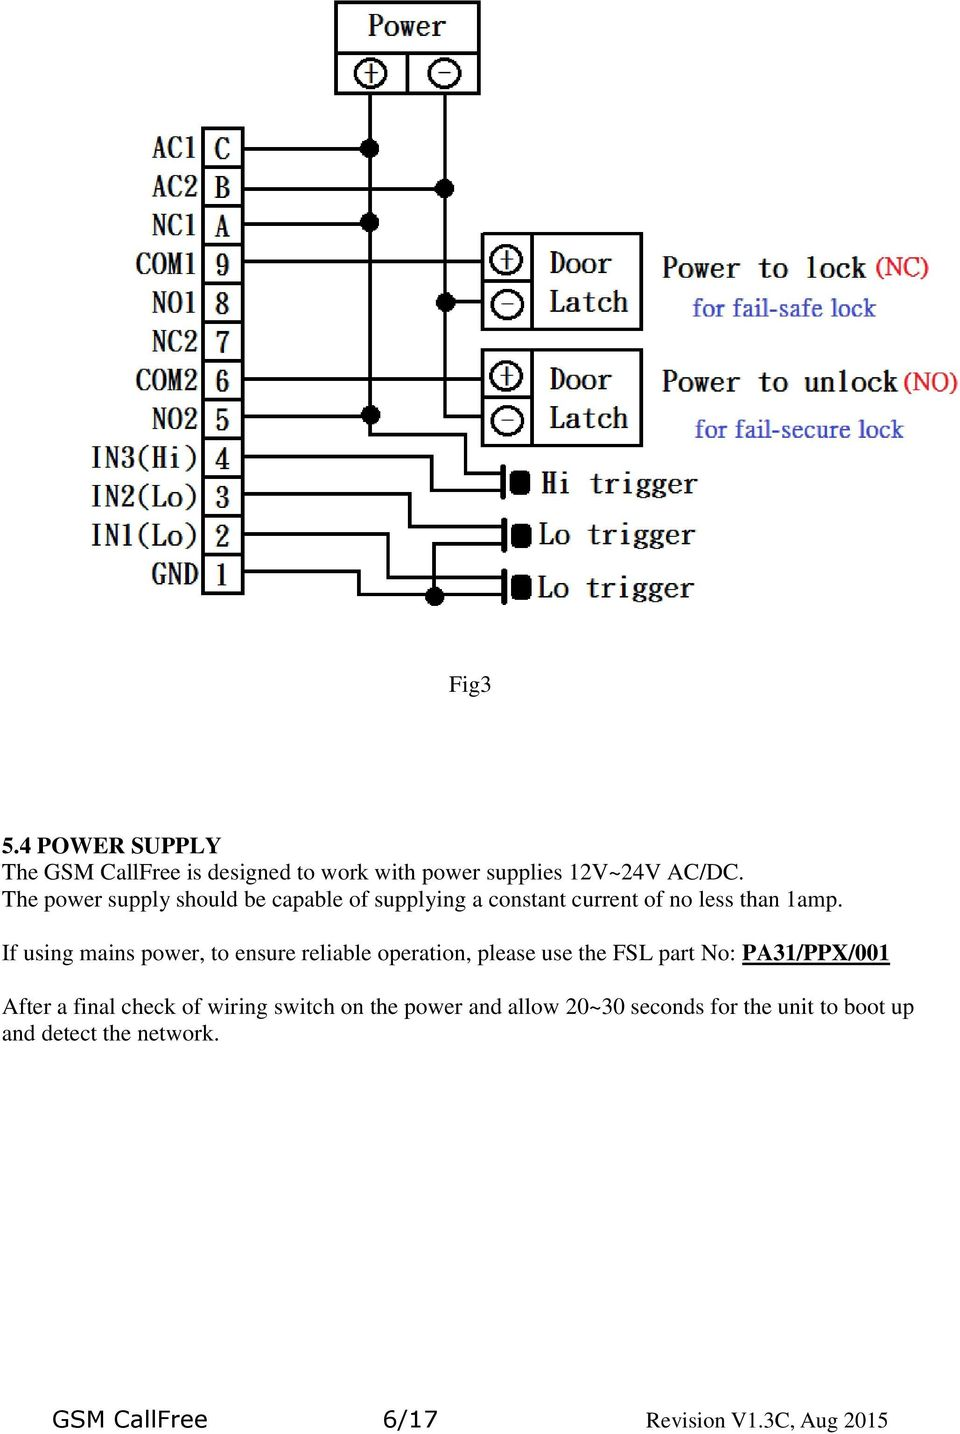 fsl wiring diagram simple wiring diagram fsl wiring diagram wiring diagrams best basic wiring diagram fsl wiring diagram